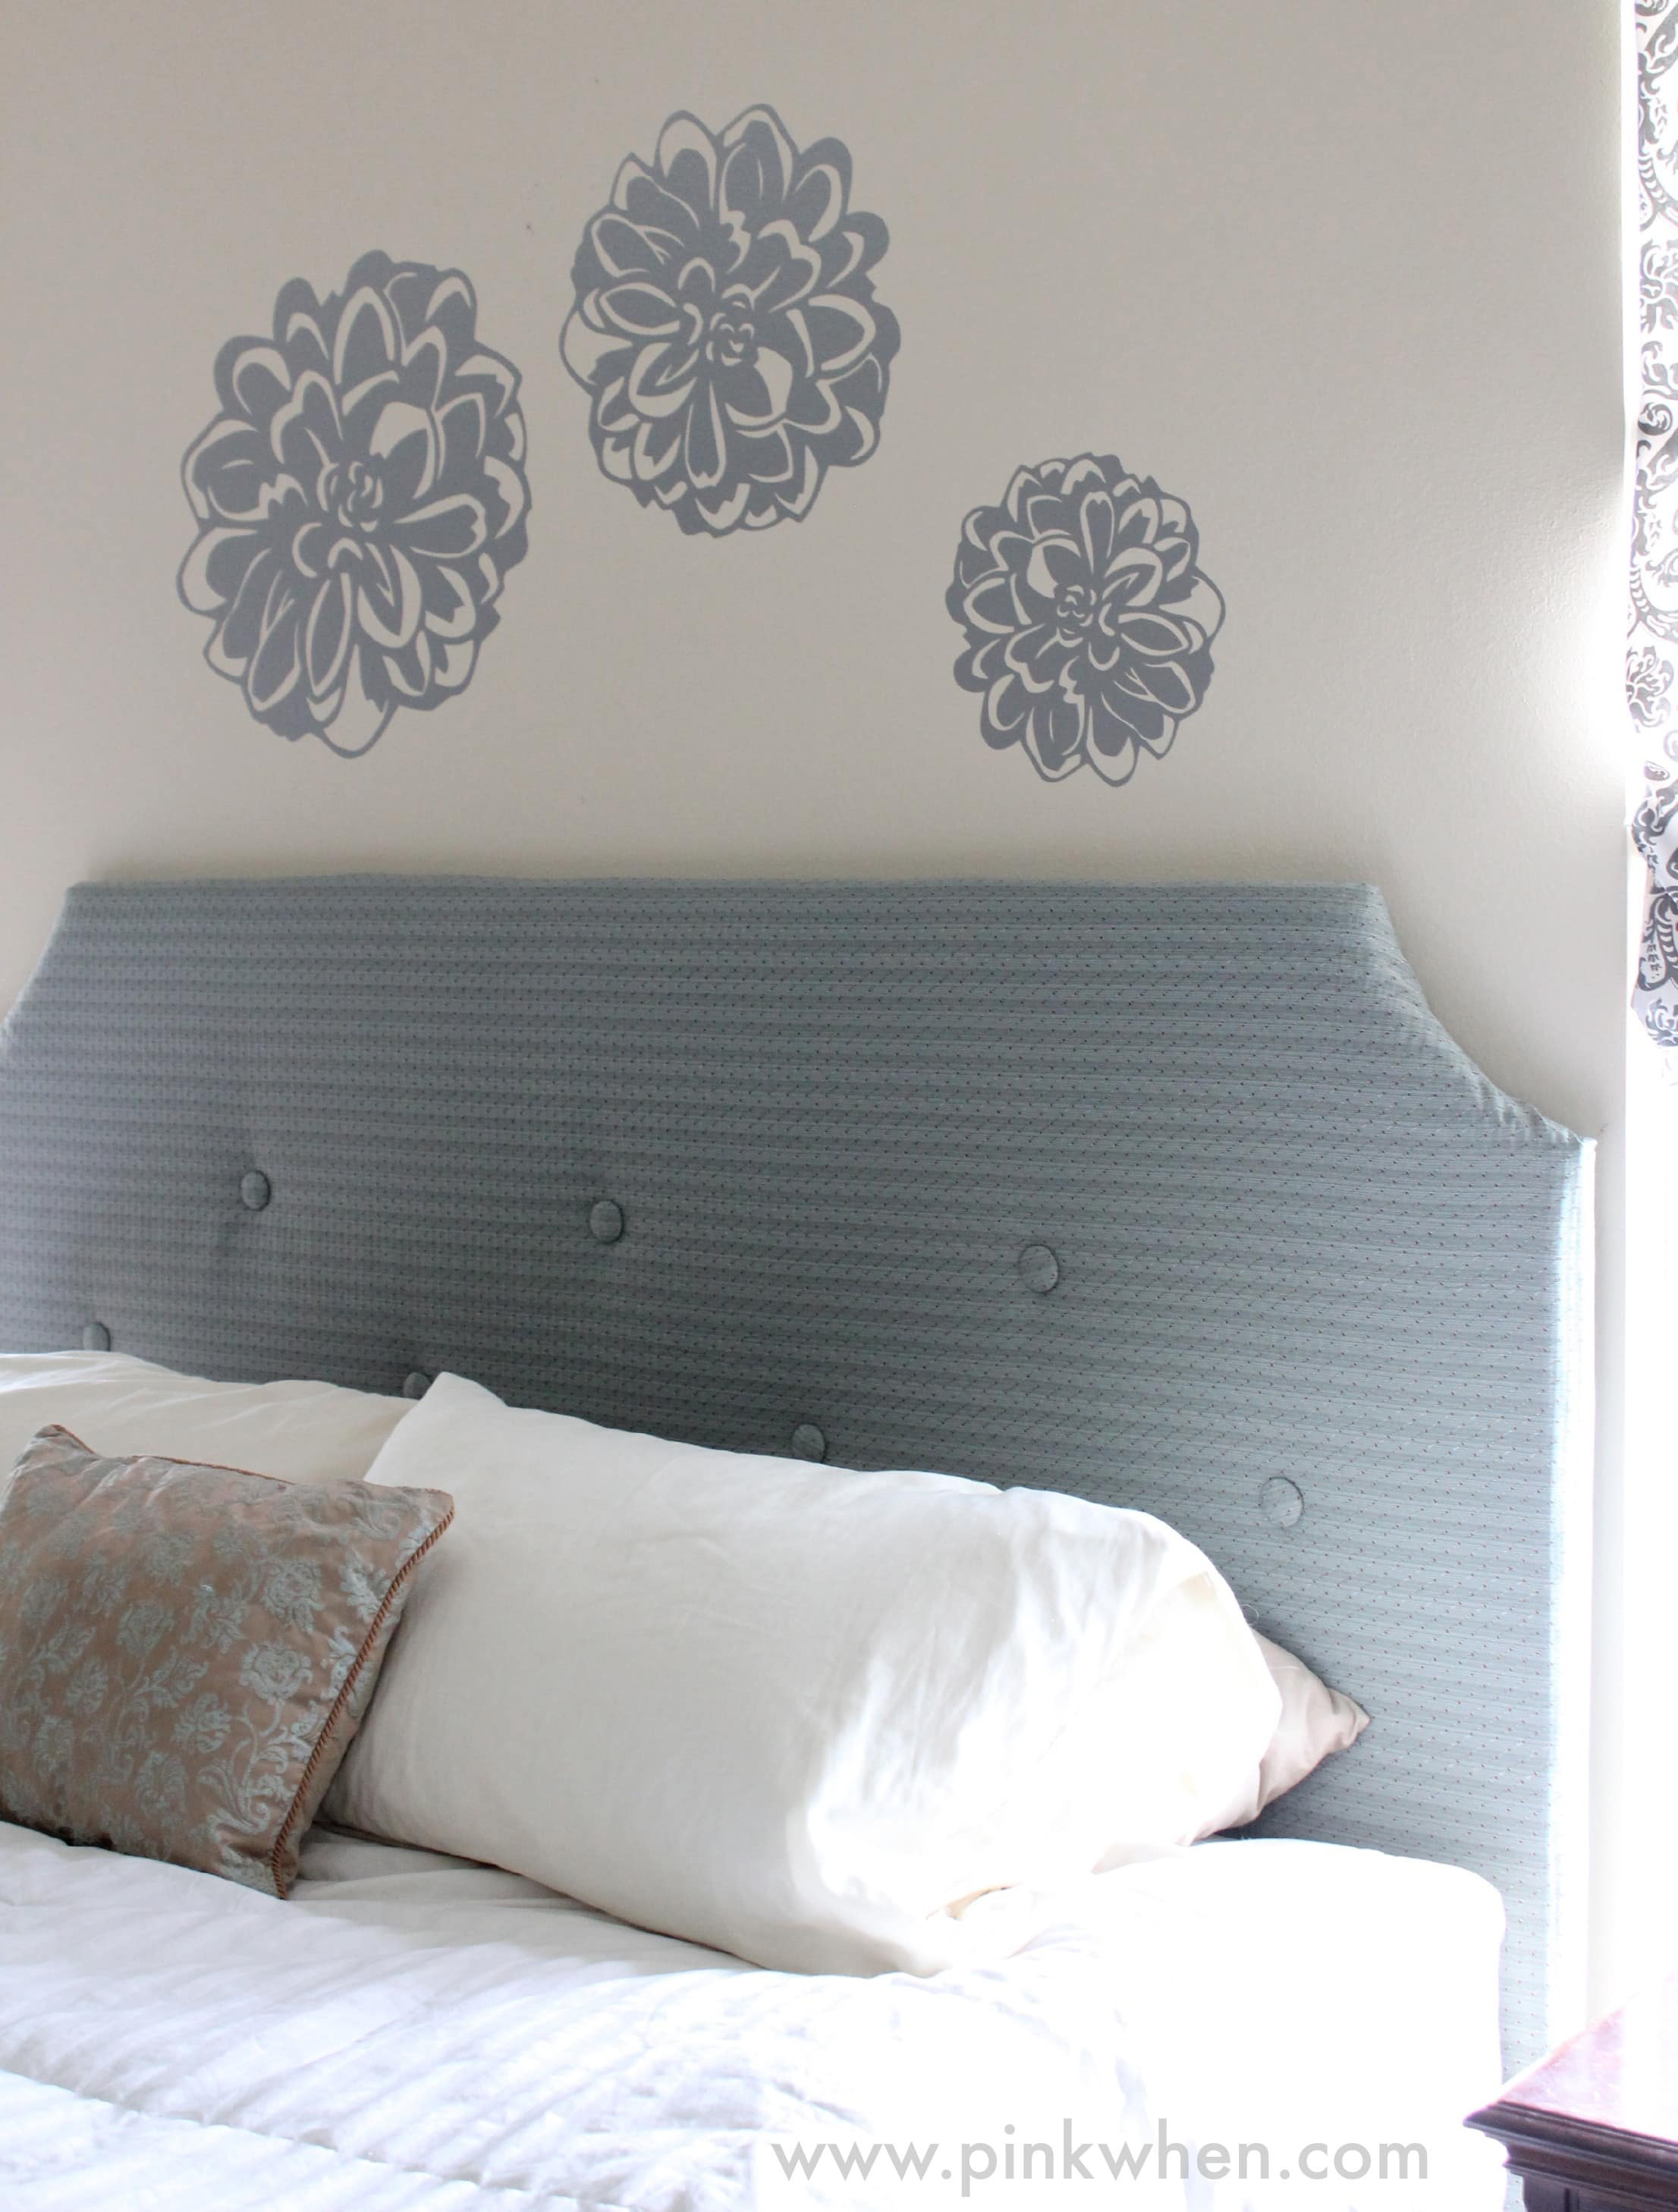 Easy & Inexpensive Wall Decor via PinkWhen.com